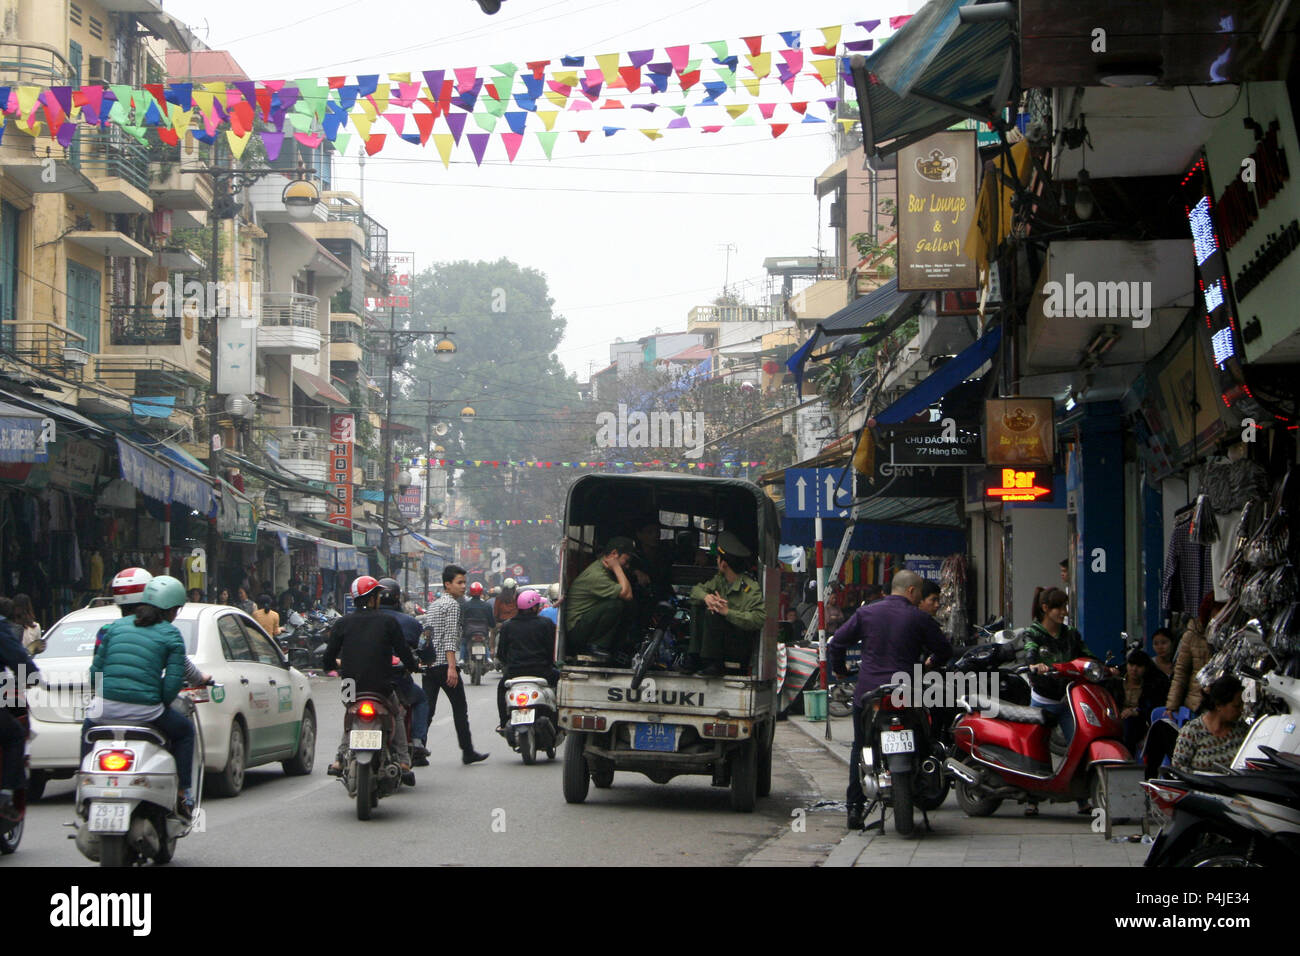 Brightly coloured bunting over busy street, Hanoi, Vietnam - Stock Image